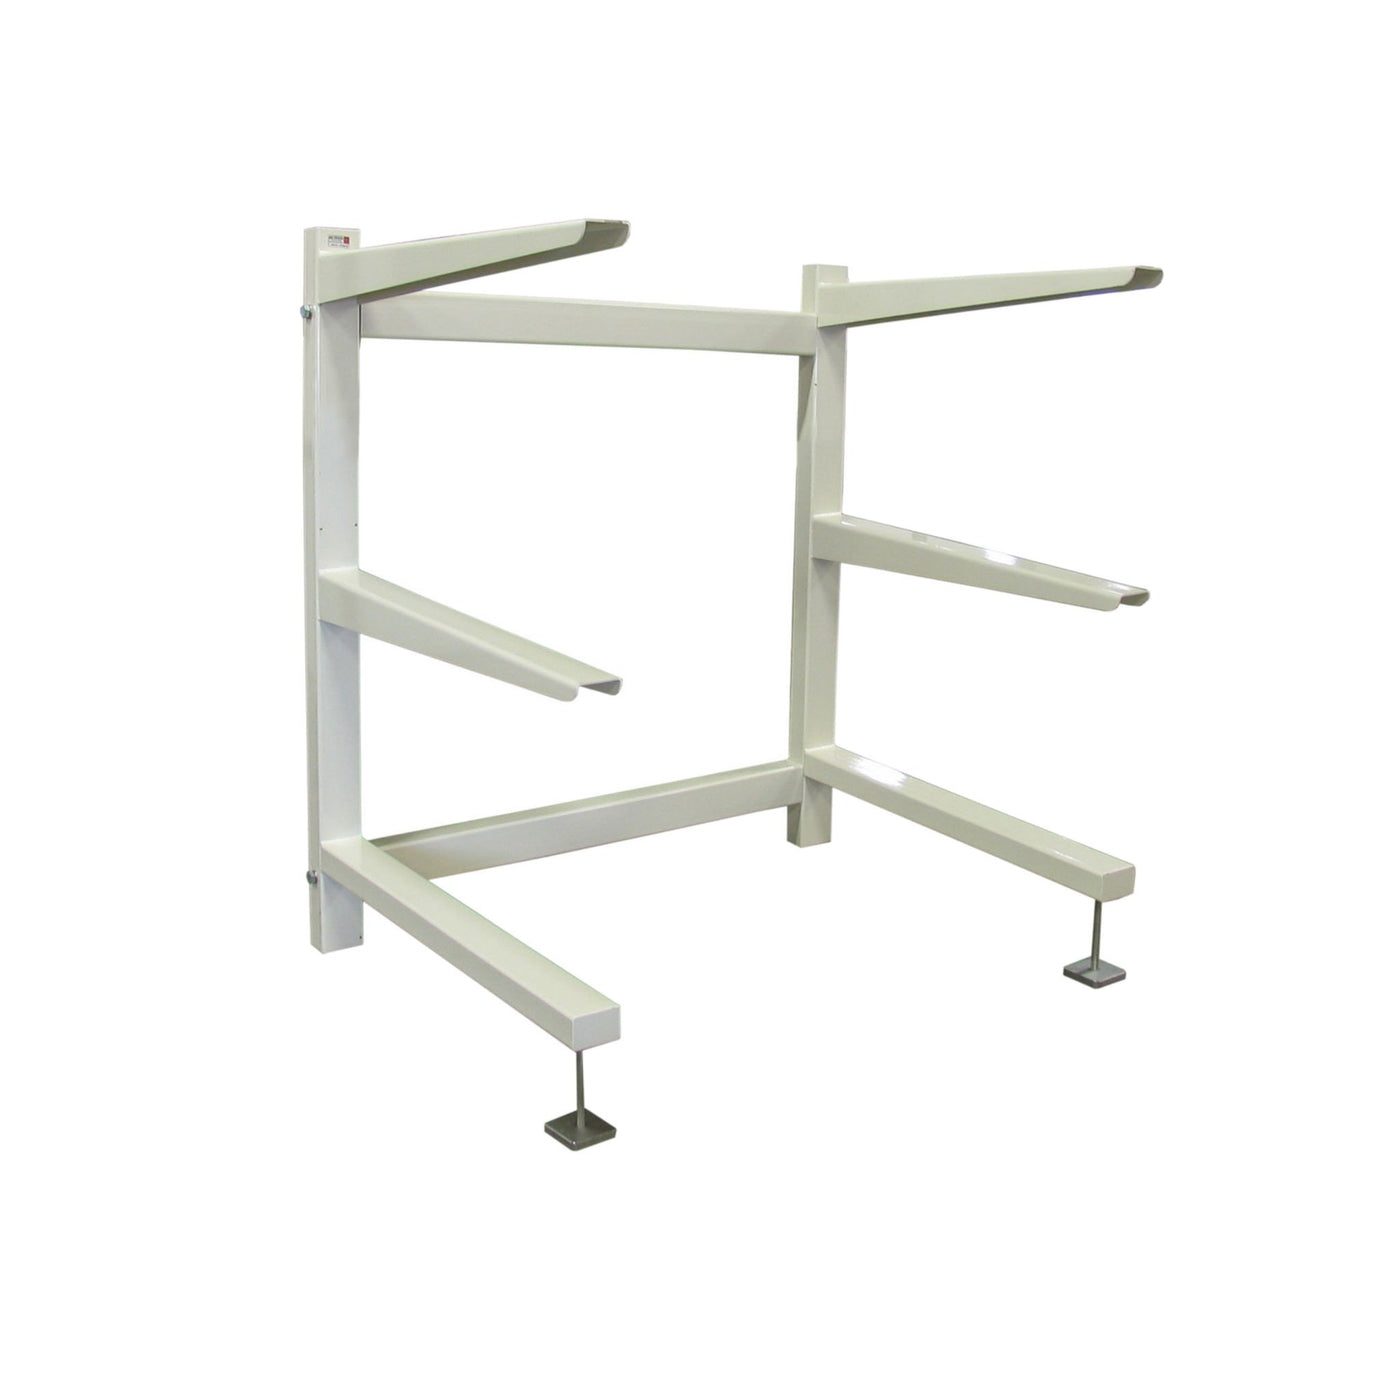 Cantilever Storage System-Cadaver Handling & Storage Systems-Mortech Manufacturing Company Inc. Quality Stainless Steel Autopsy, Morgue, Funeral Home, Necropsy, Veterinary / Anatomy, Dissection Equipment and Accessories